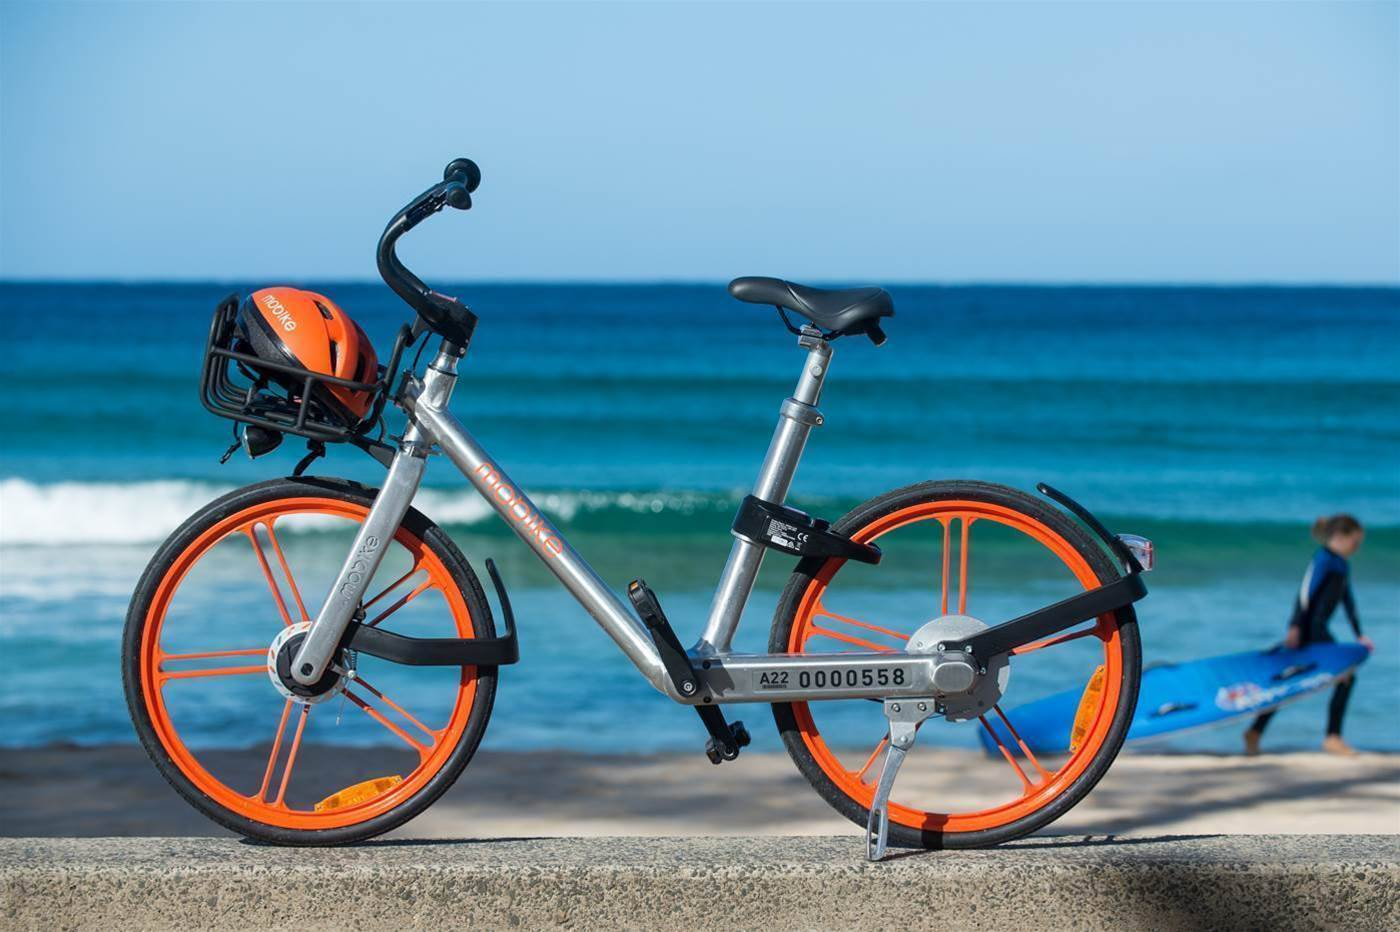 New bike-share company vows to change the perception of the industry